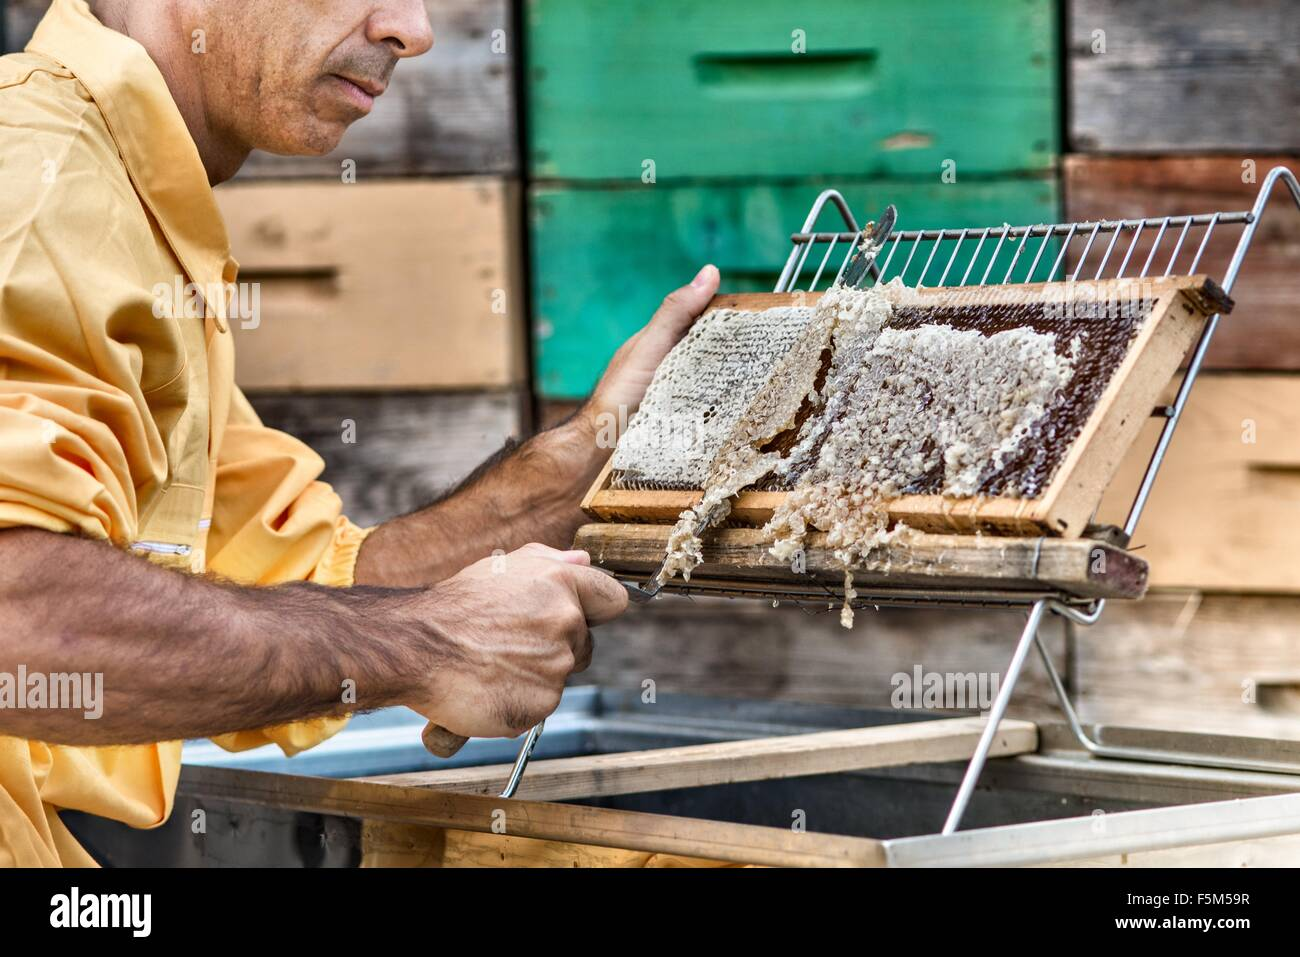 Honeykeeper uncapping hive frame - Stock Image